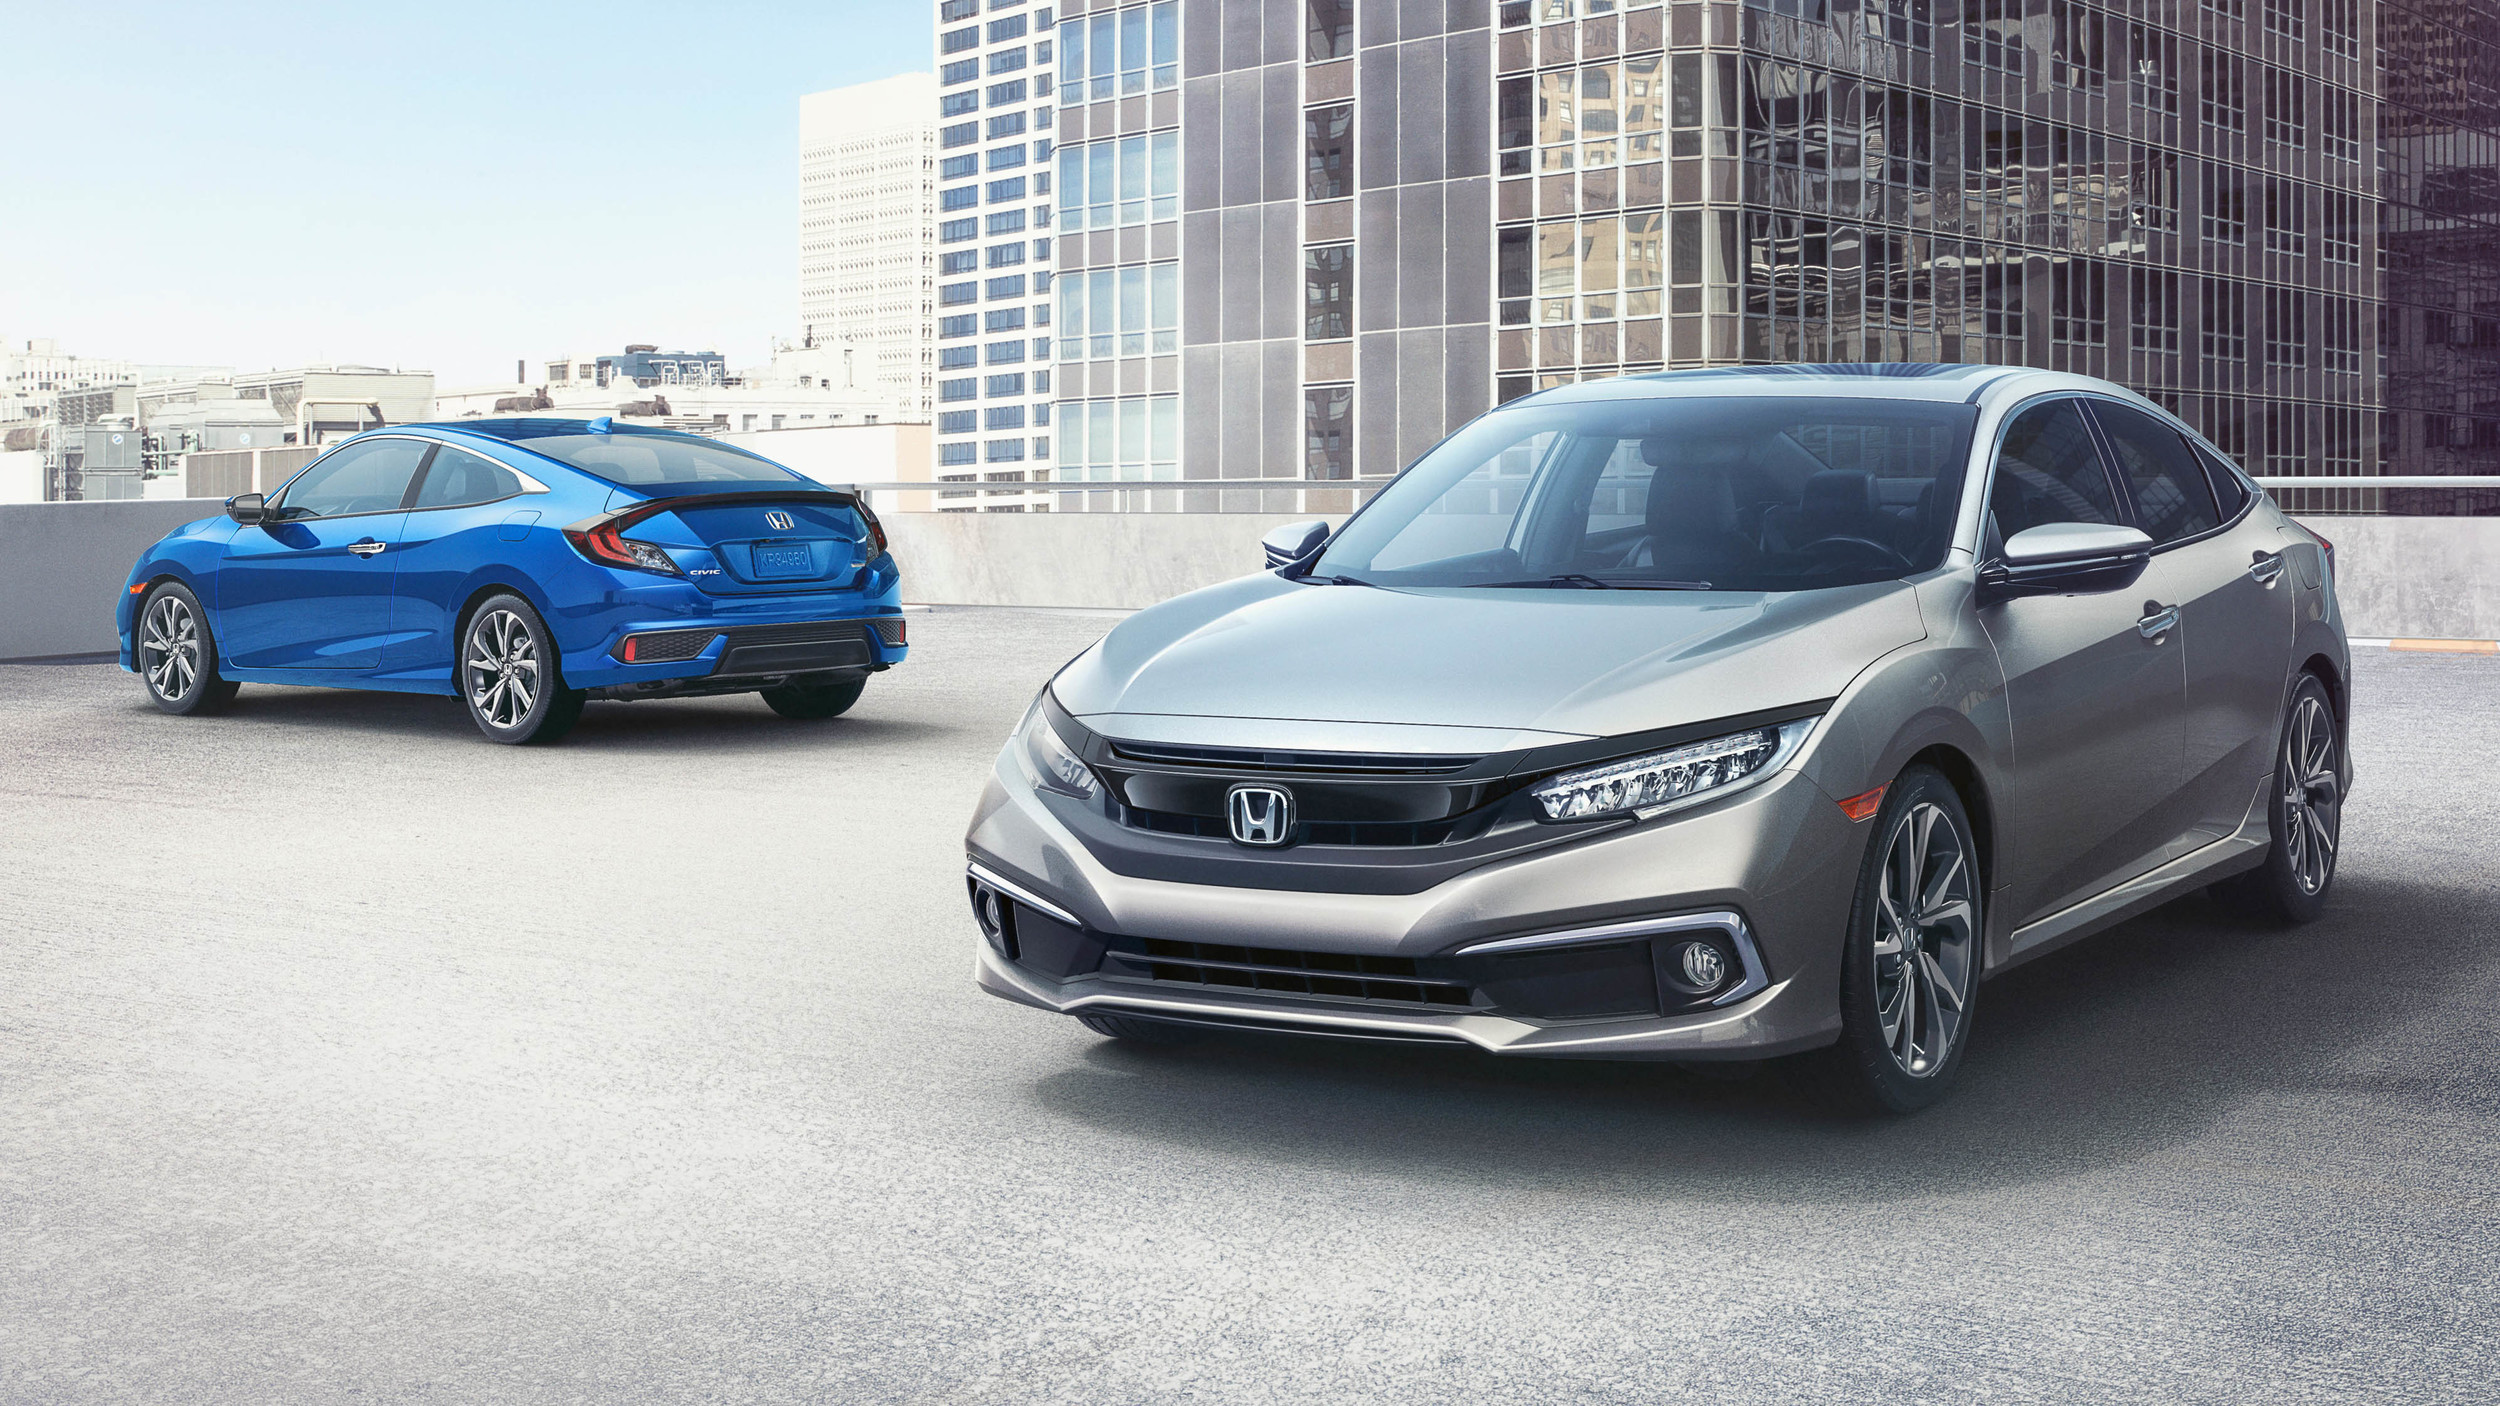 2019-honda-civic-sport-coupe-sedan-1.jpg